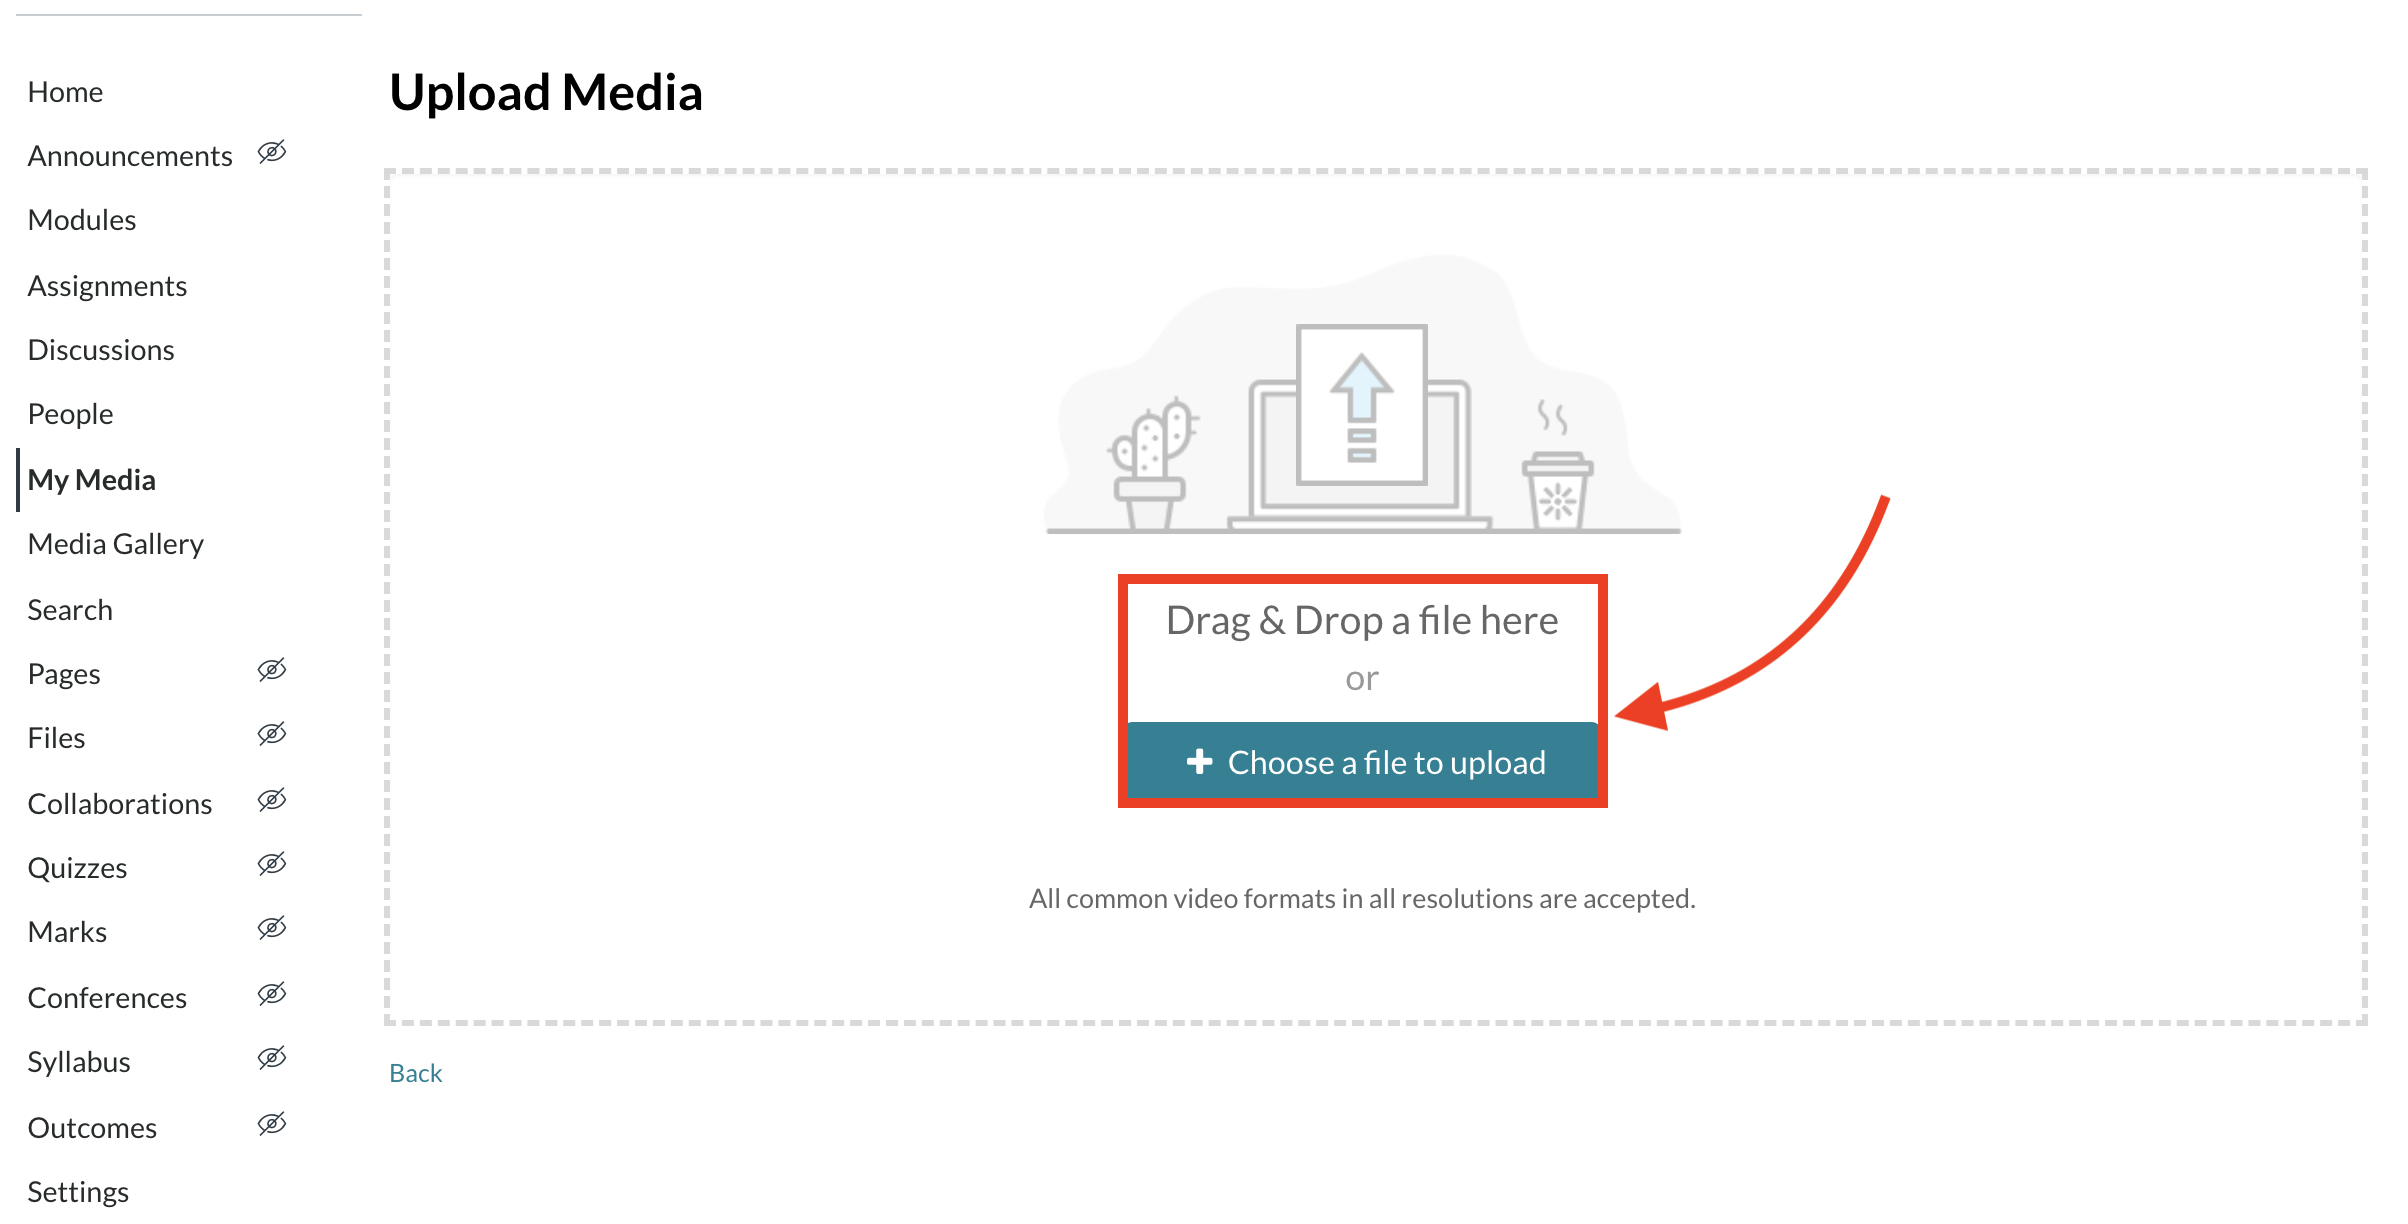 Screenshot of Upload Media page in Canvas